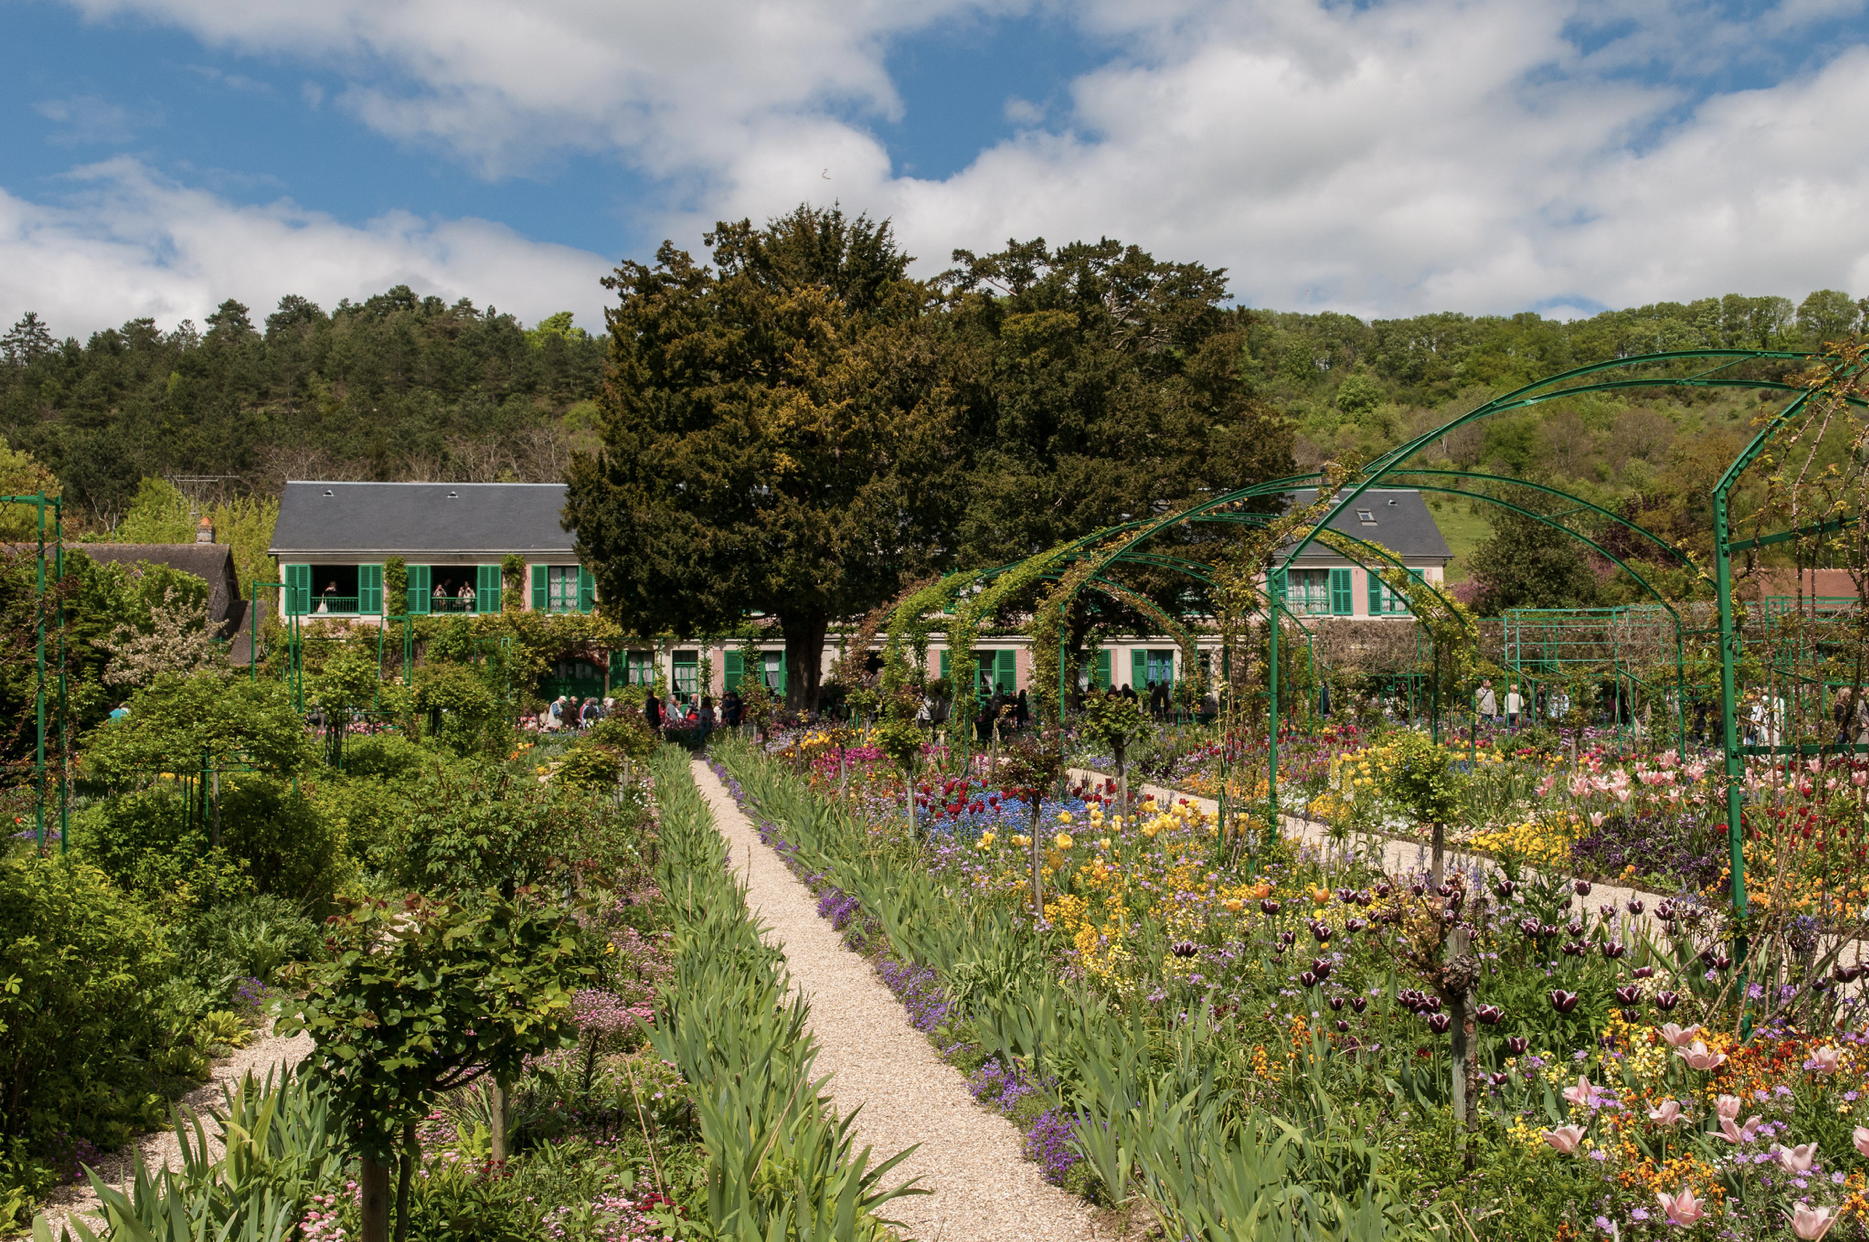 Monet's house and gardens in Giverny France